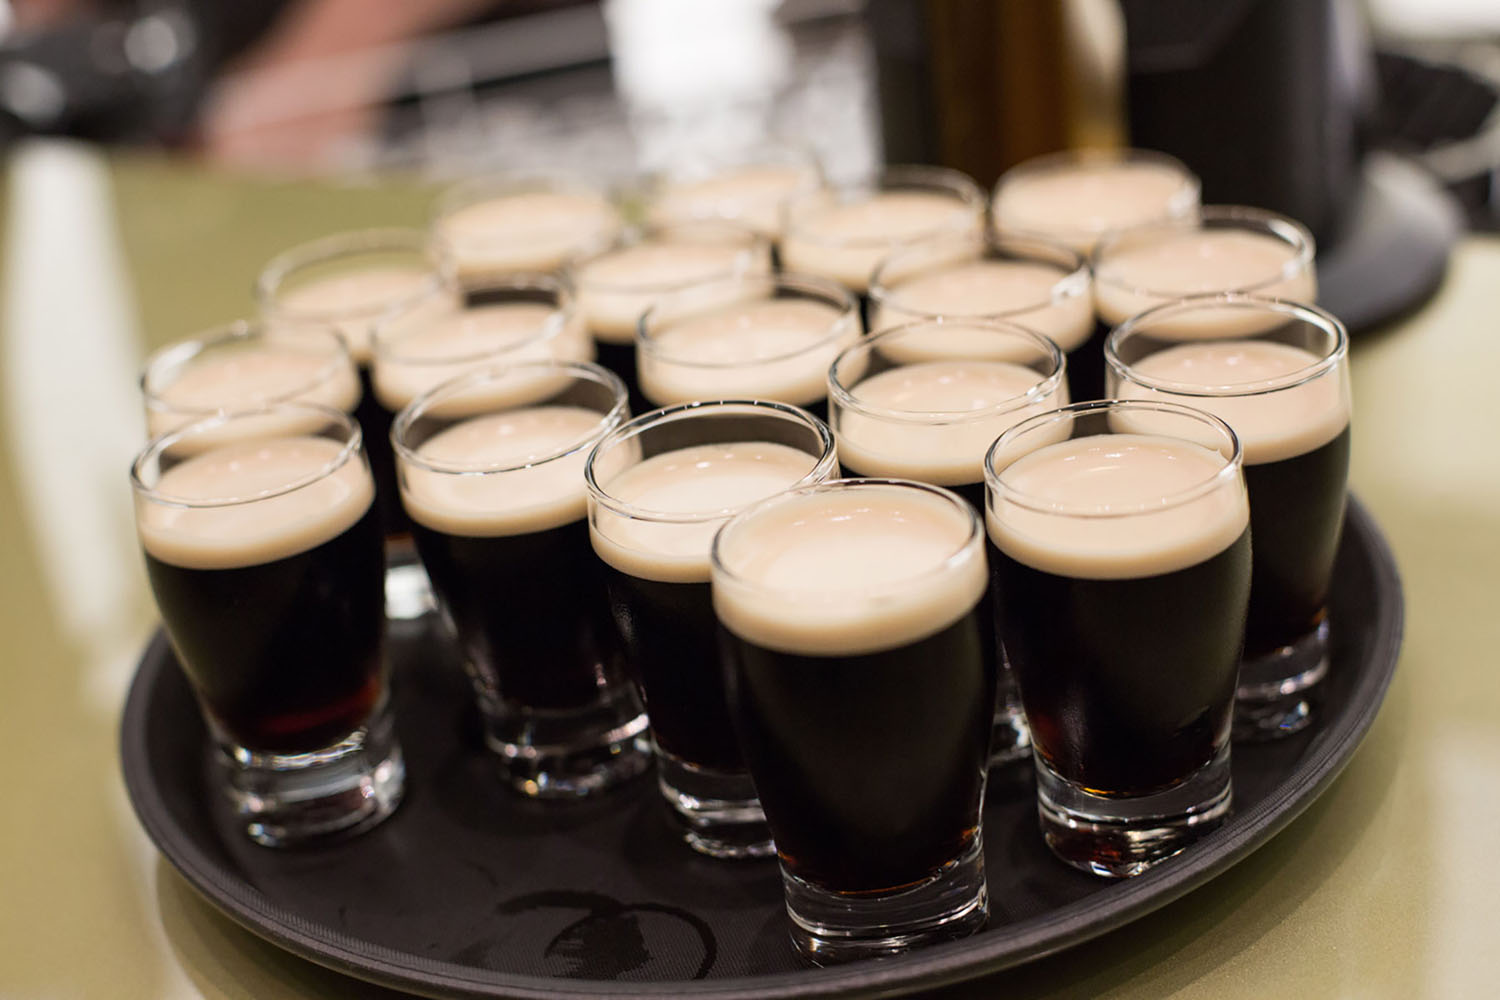 A tray of Guinness Beer samples.